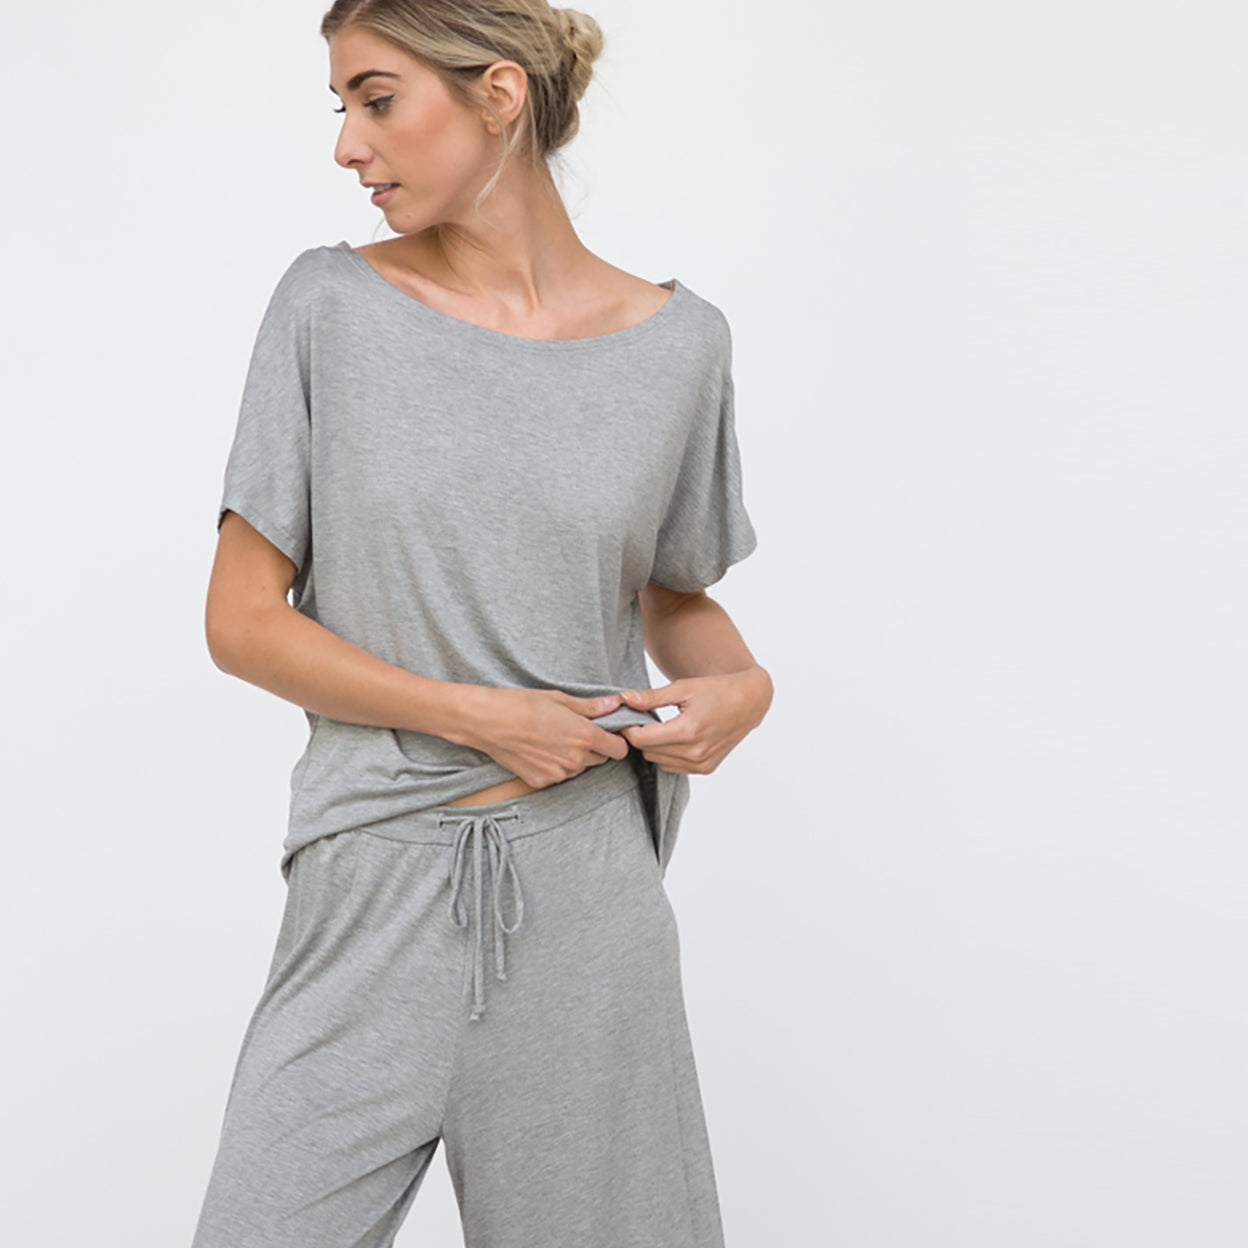 Solid Comfort Lounging Sets